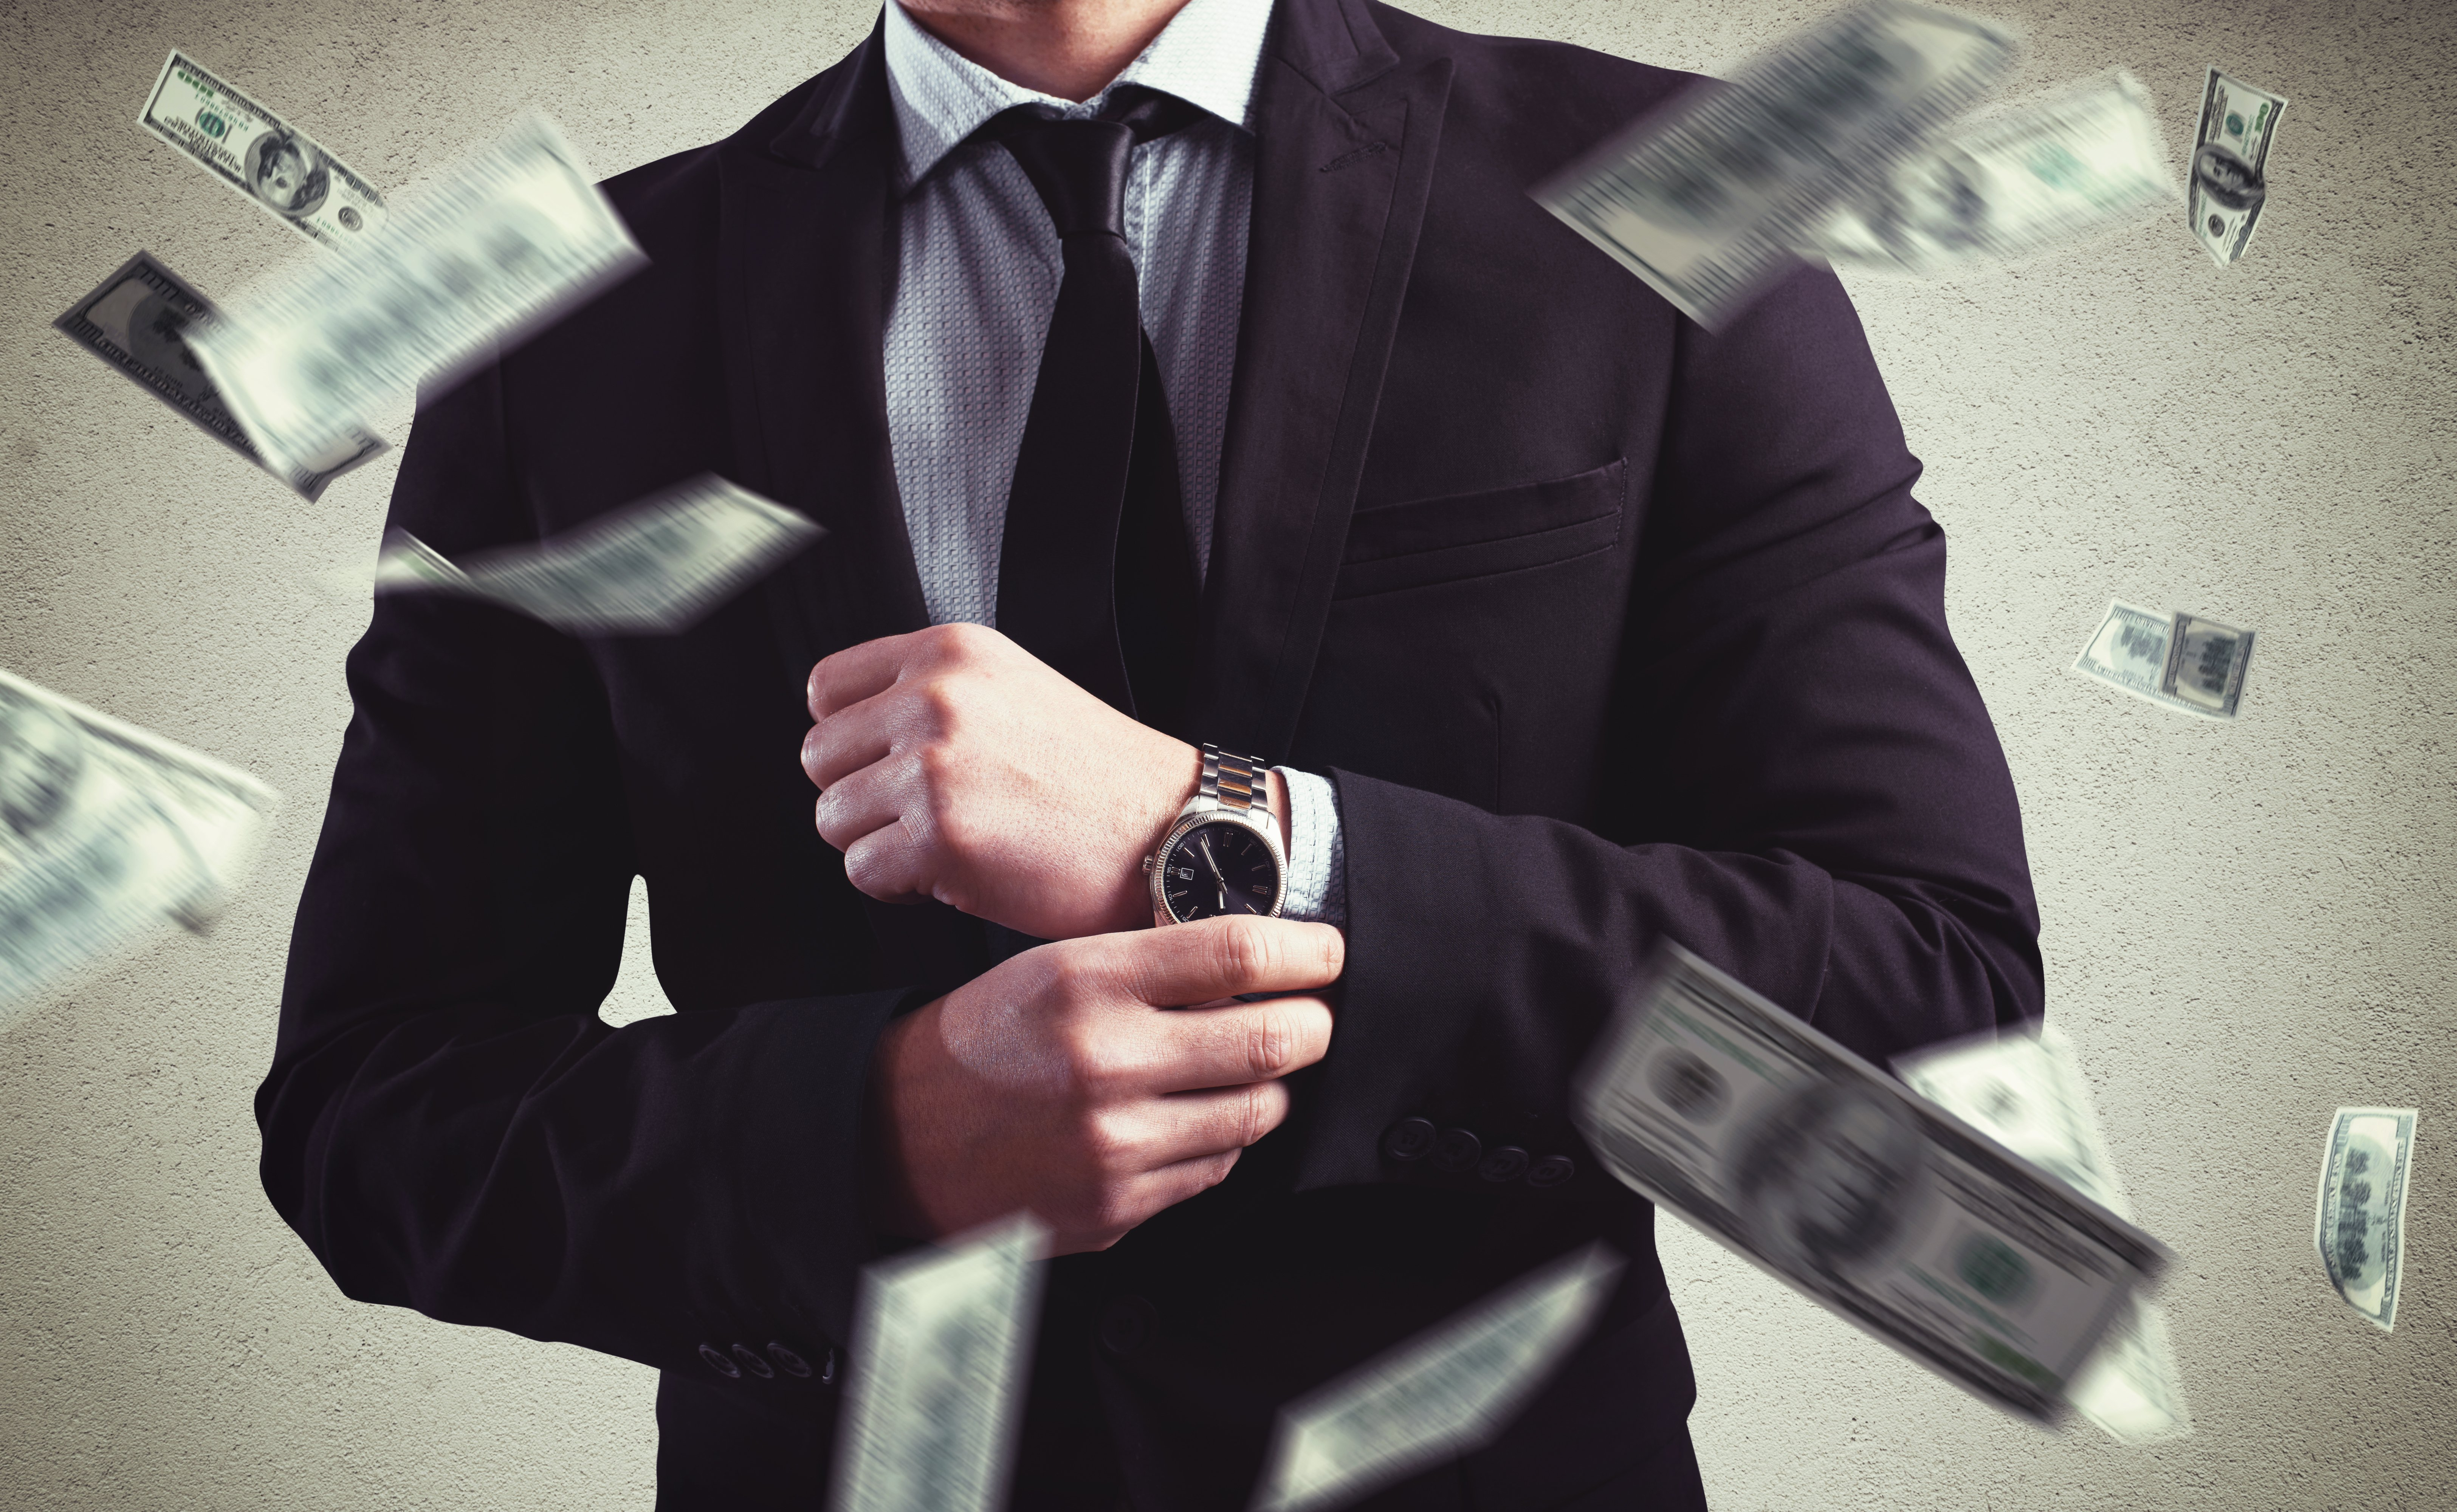 Dollar bills flying around a man who is corporately dressed | Photo: Shutterstock